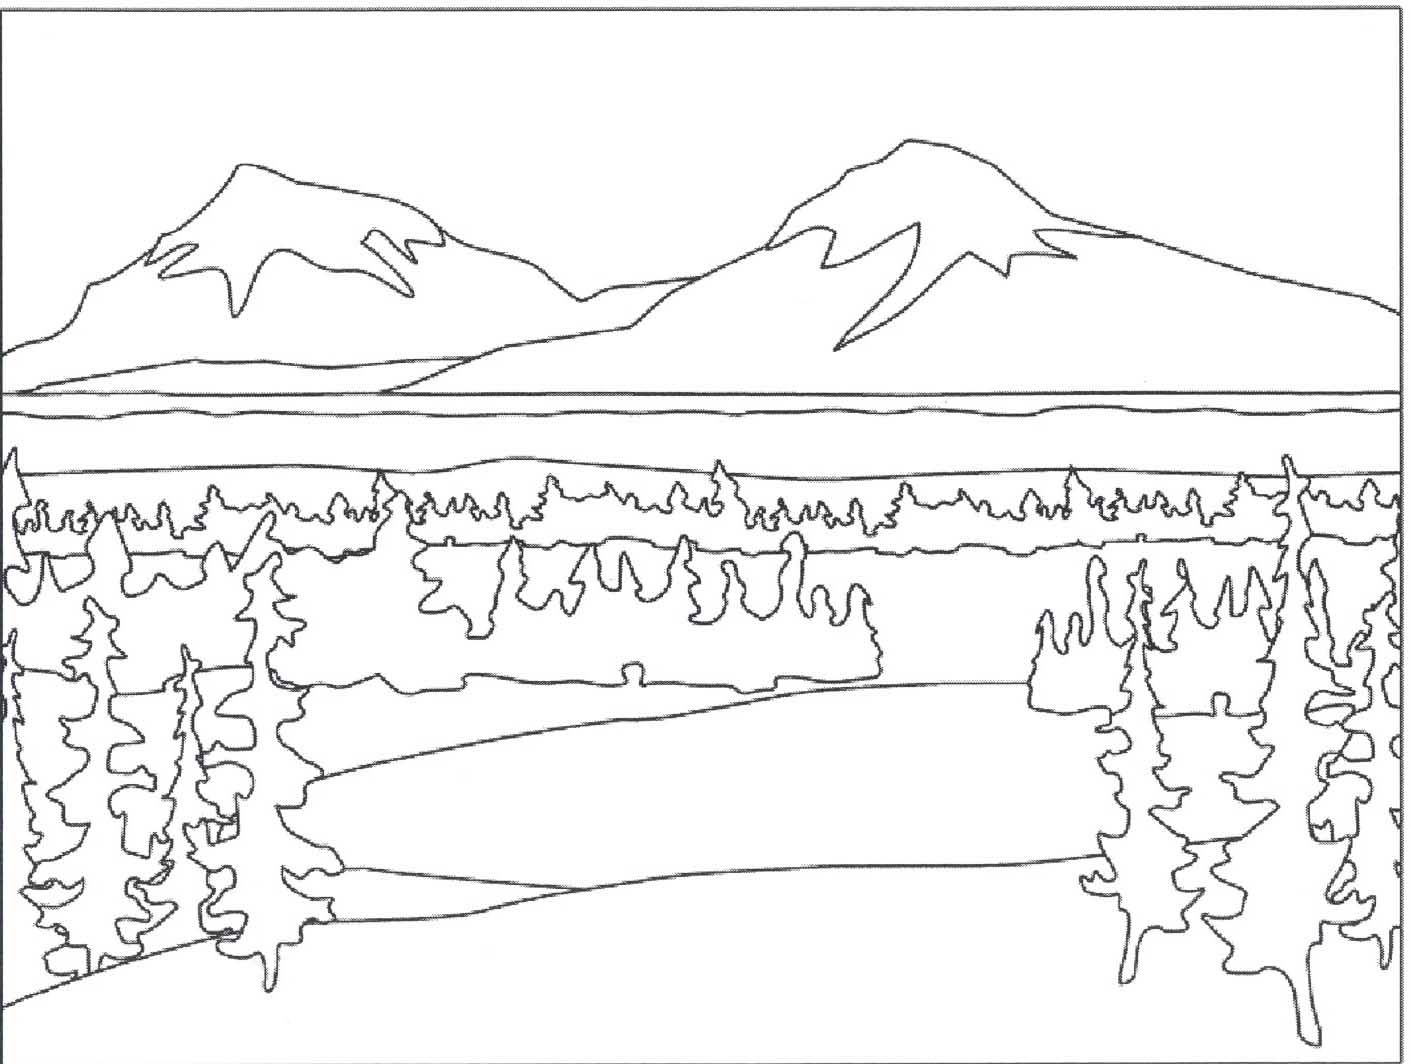 Coloring Page Landscape - A collection of great coloring pages there are lots of coloring sheets all over the web our mission is to organize them and have them ranked by the